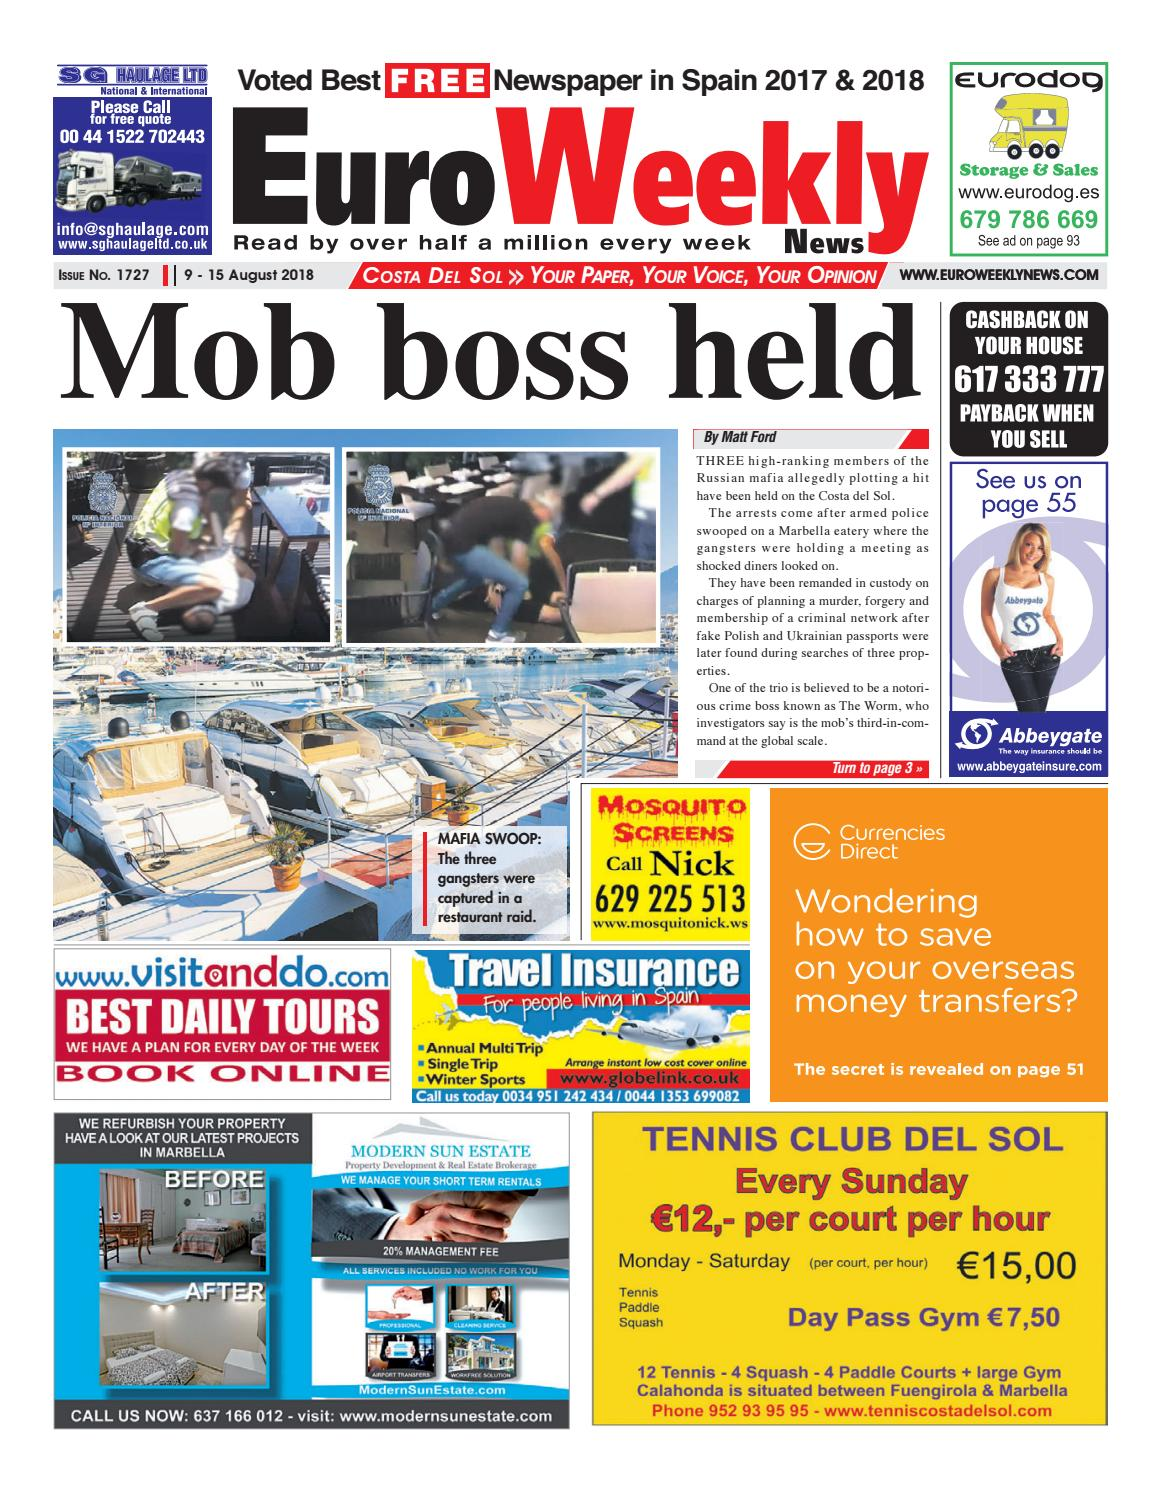 2b20812eb84 Euro Weekly News - Costa del Sol 9 - 15 August 2018 Issue 1727 by Euro  Weekly News Media S.A. - issuu